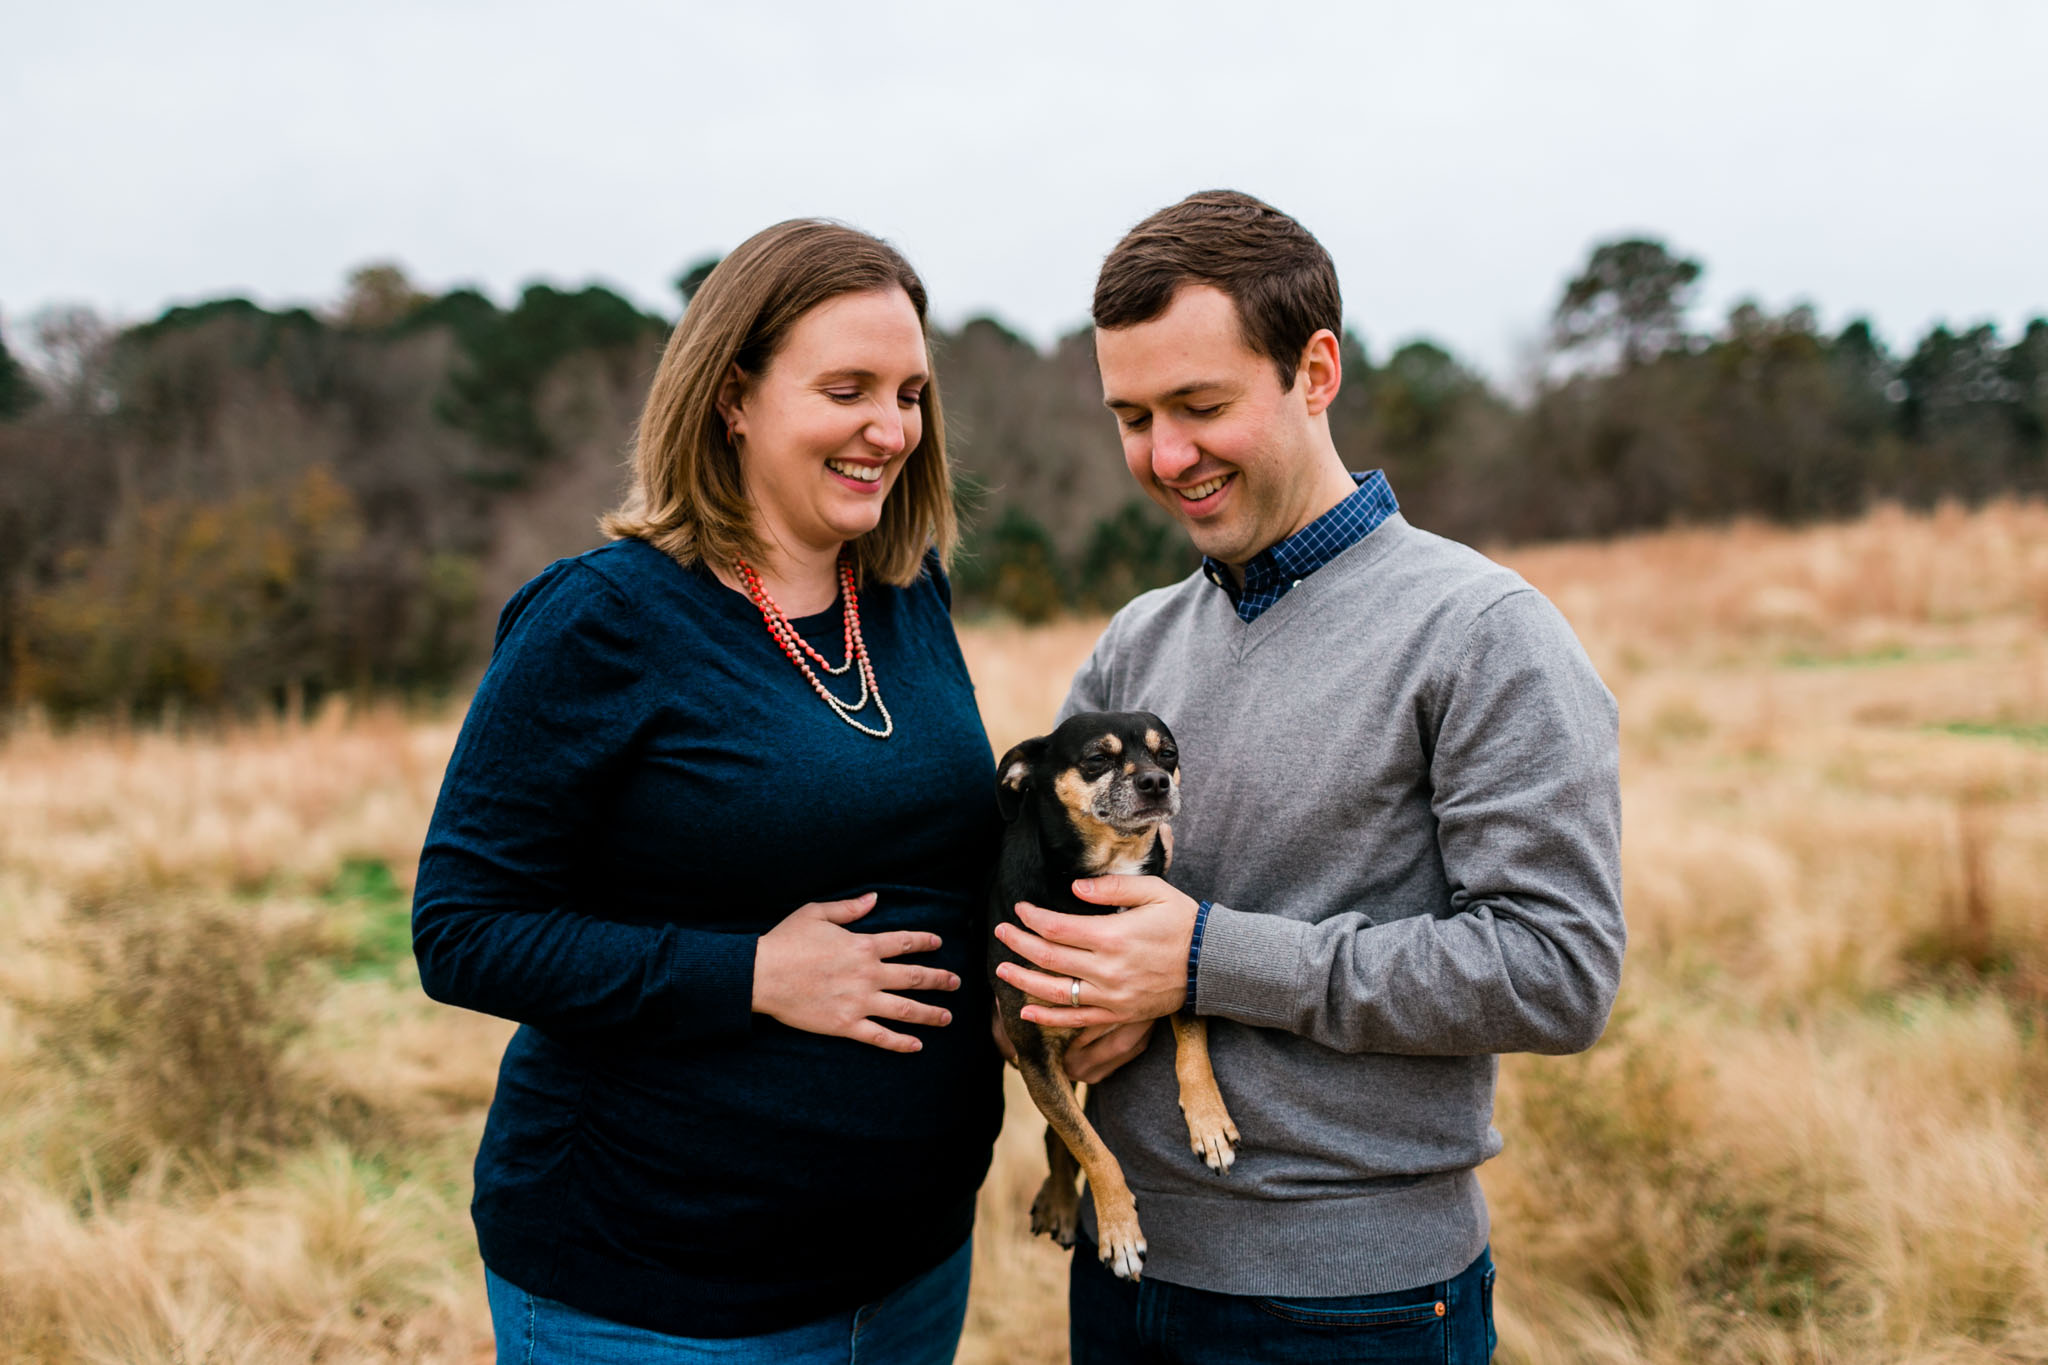 Candid maternity portrait of family with dog in open field | Raleigh Maternity Photographer | By G. Lin Photography